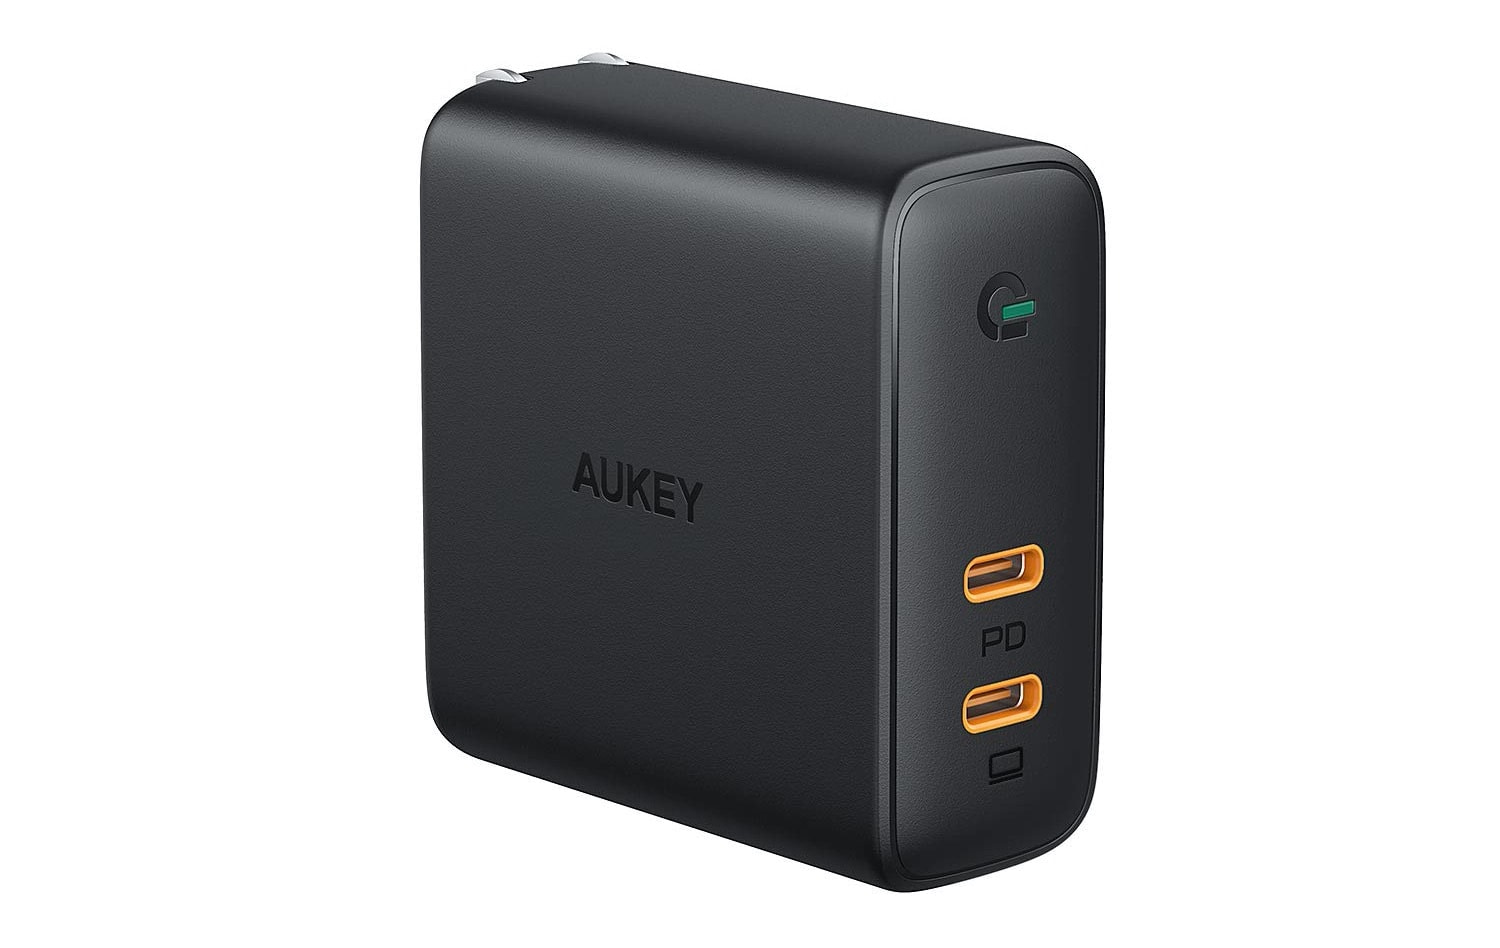 Aukey USB C 63W PD 3 Charger